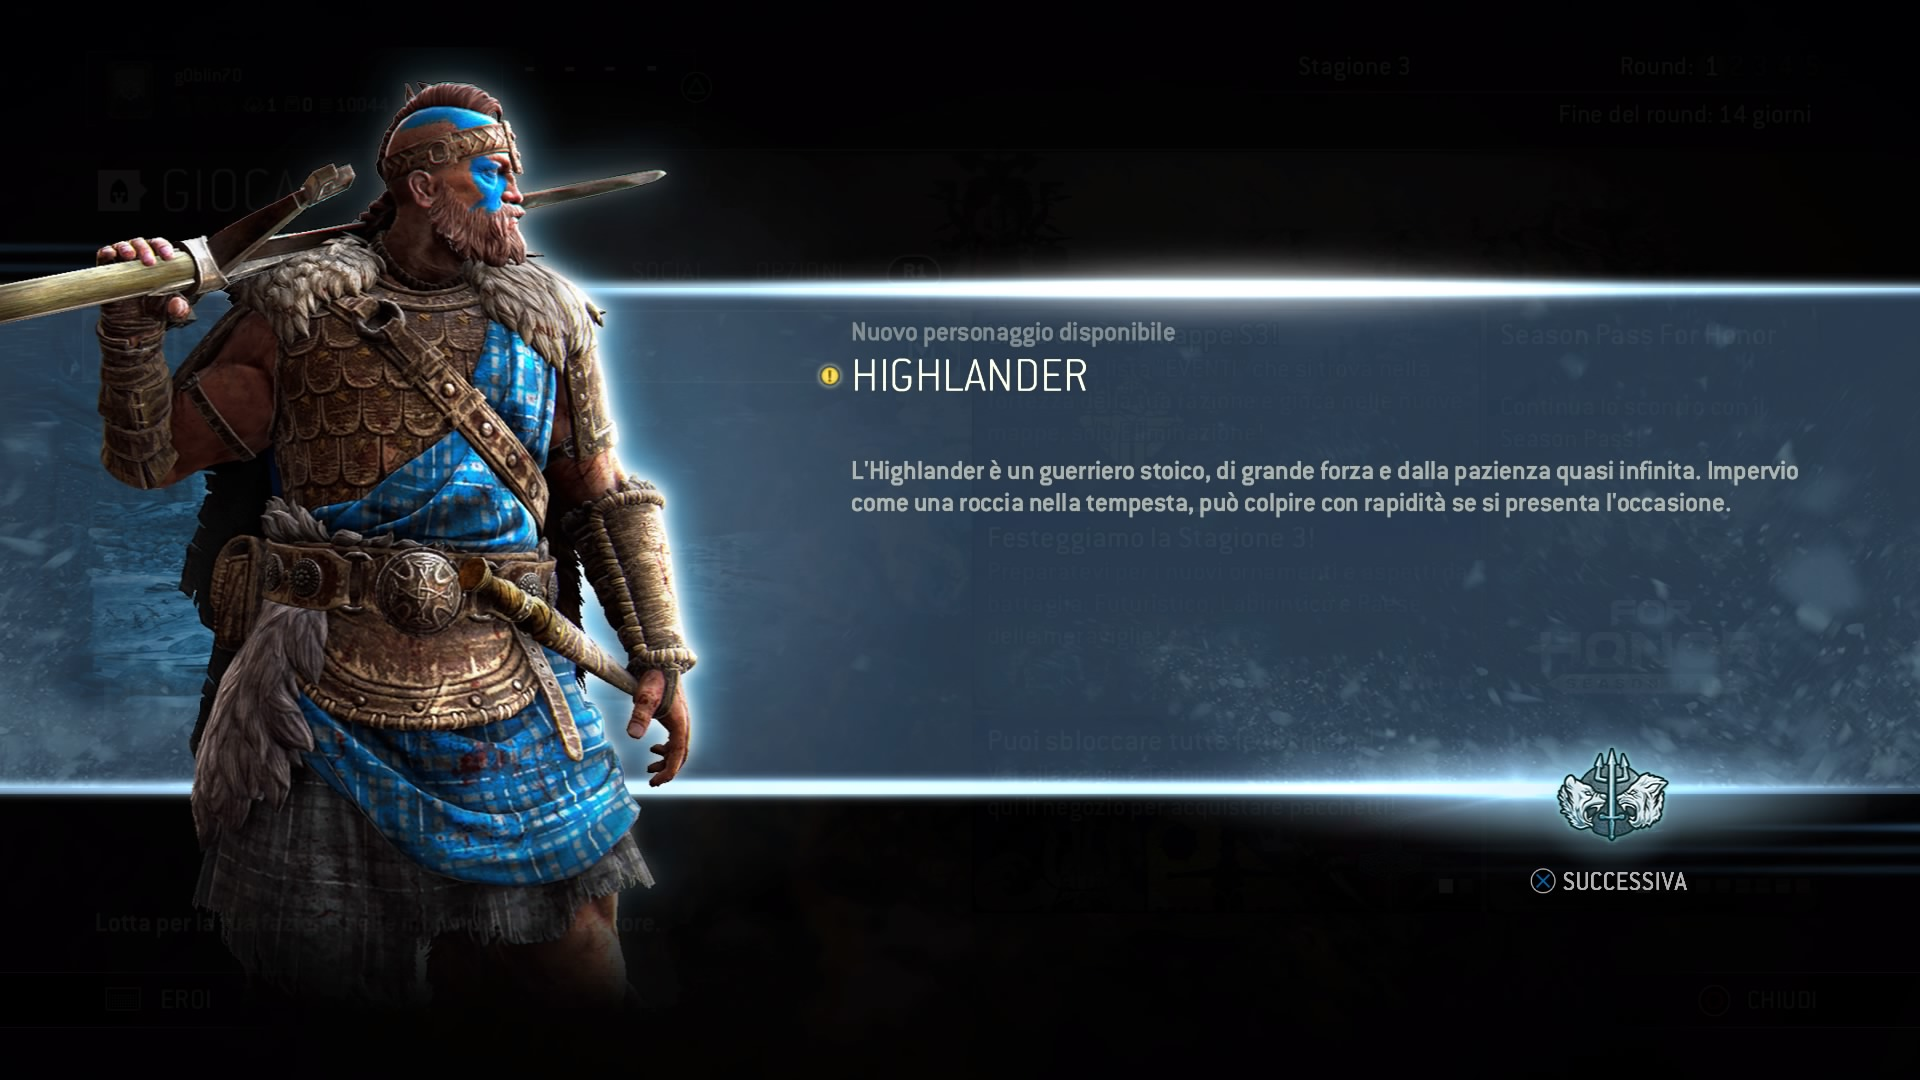 for honor matchmaking